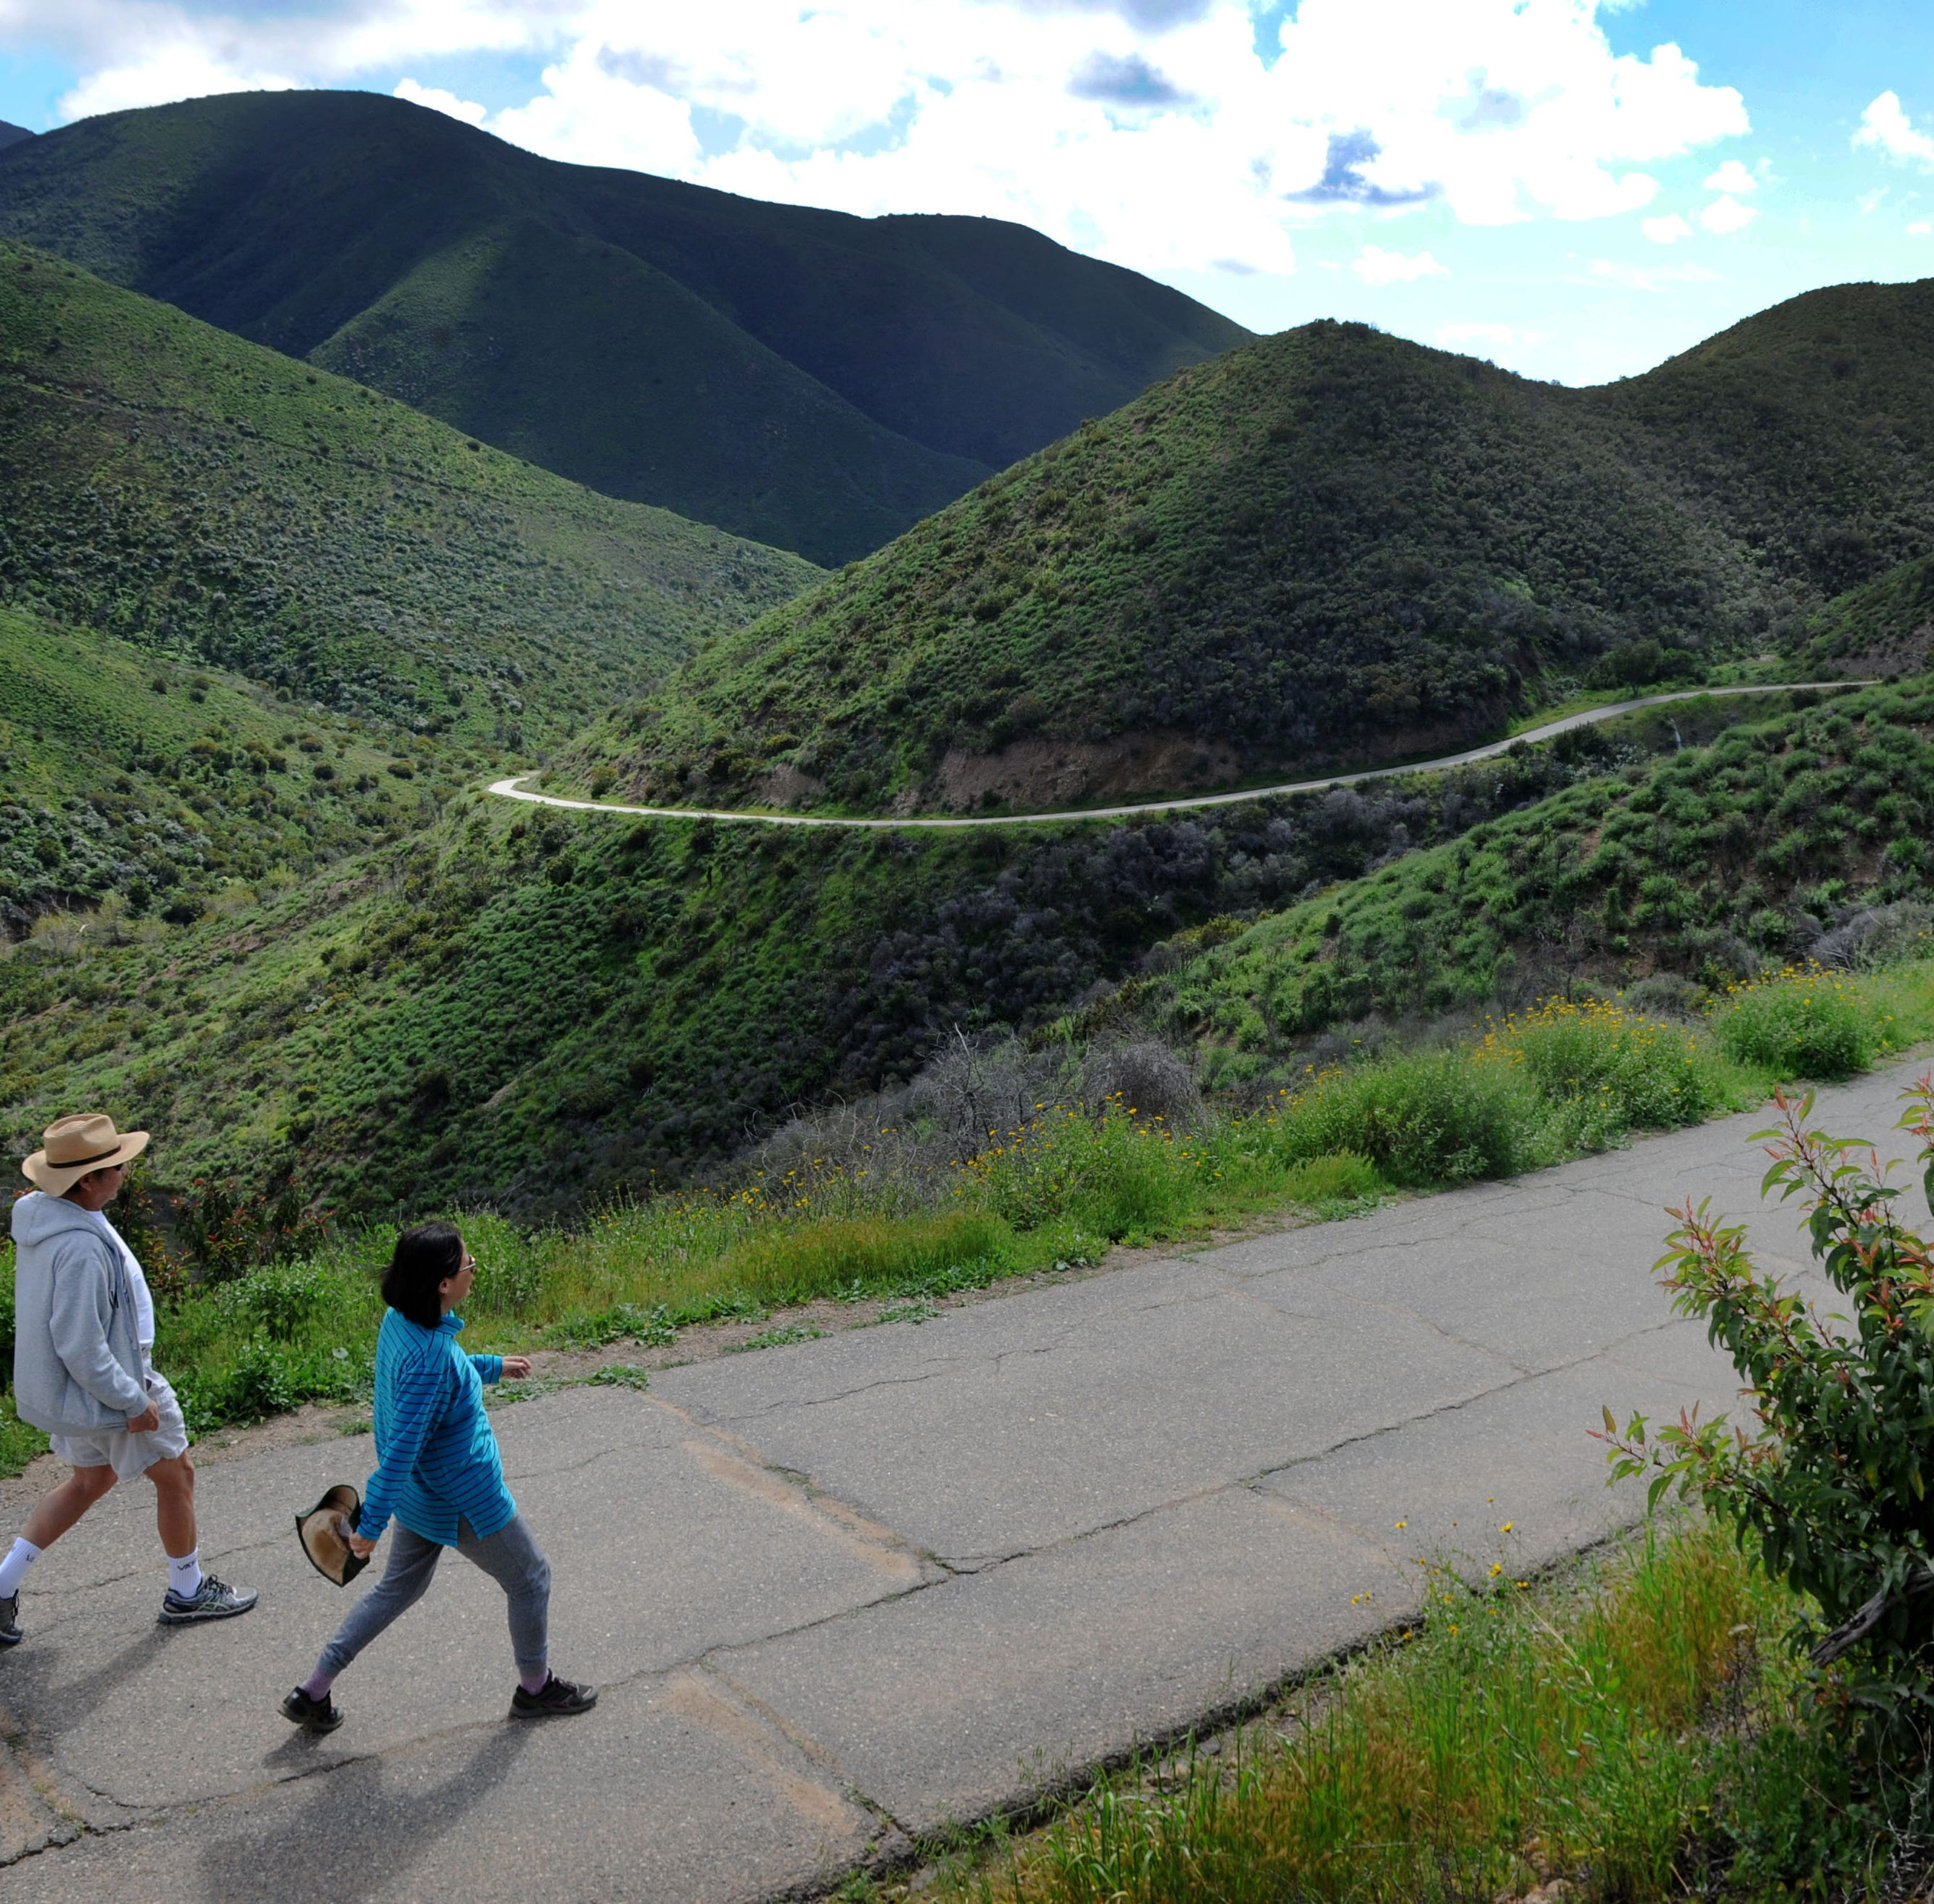 Ventura County is a healthier place to live than Santa Barbara and Los Angeles counties